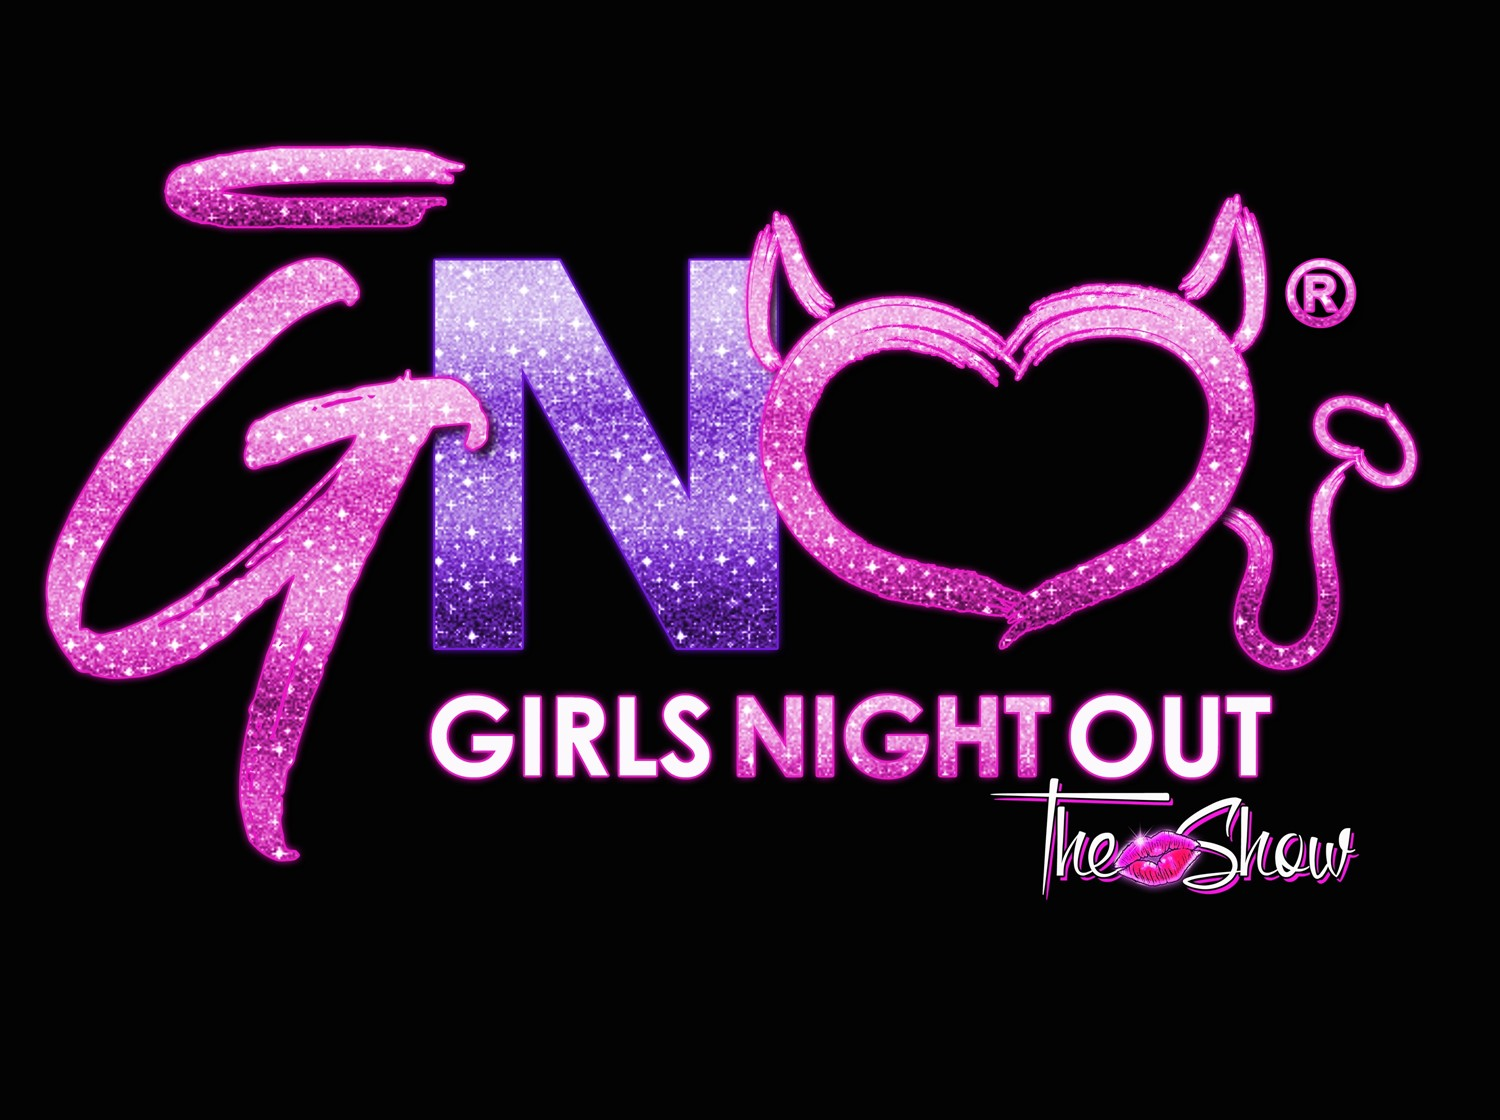 308 Brass Rail (21+) Jackson, MI on Apr 19, 20:00@308 Brass Rail - Buy tickets and Get information on Girls Night Out the Show tickets.girlsnightouttheshow.com